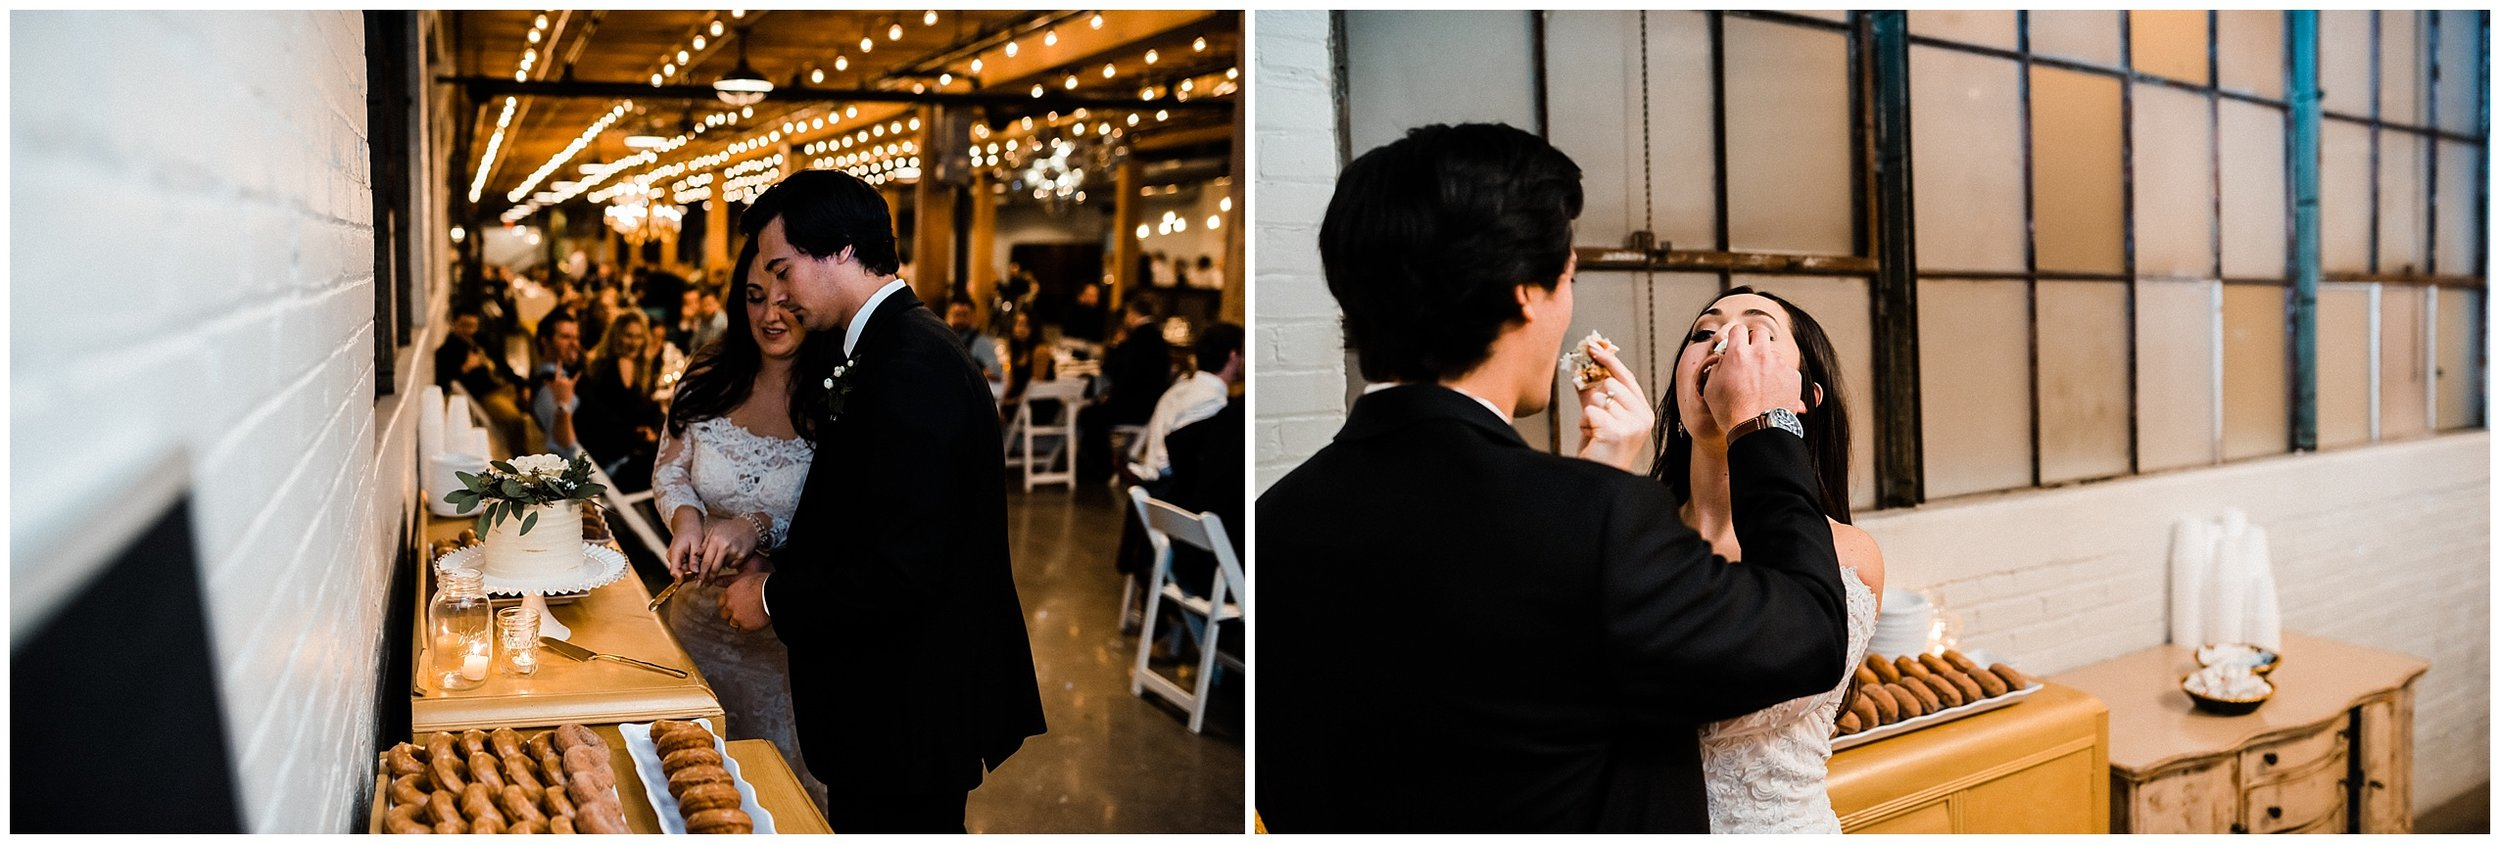 Josh + Marissa | Just Married_2114.jpg